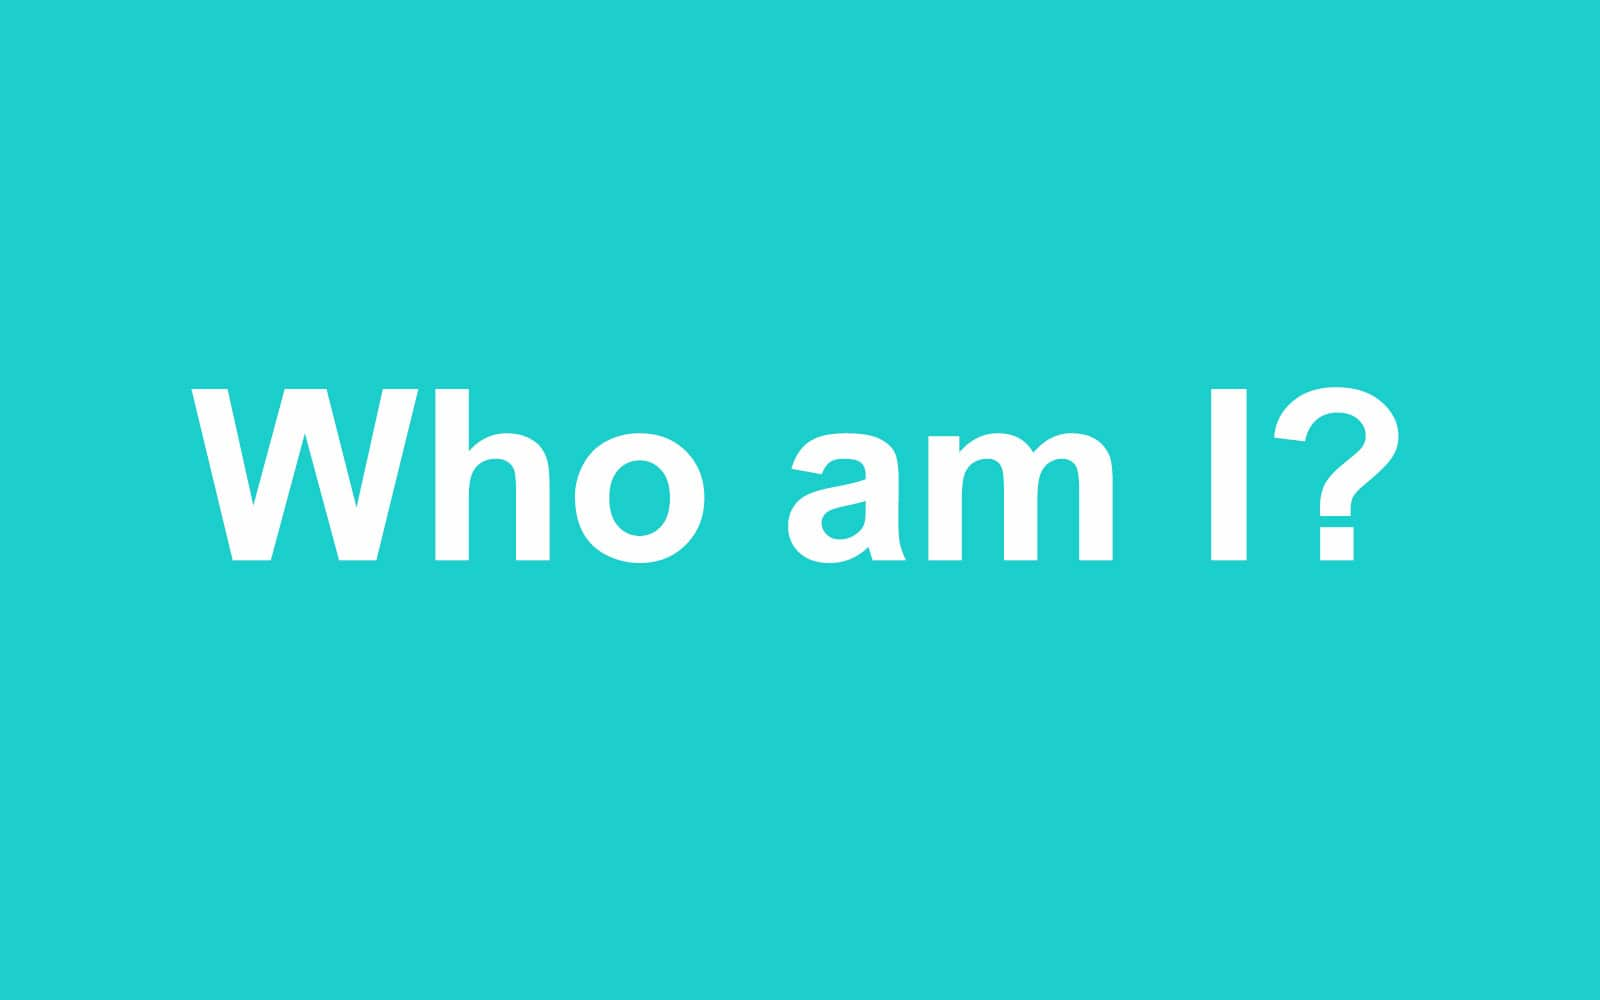 Wellbeing Article: Who am I?